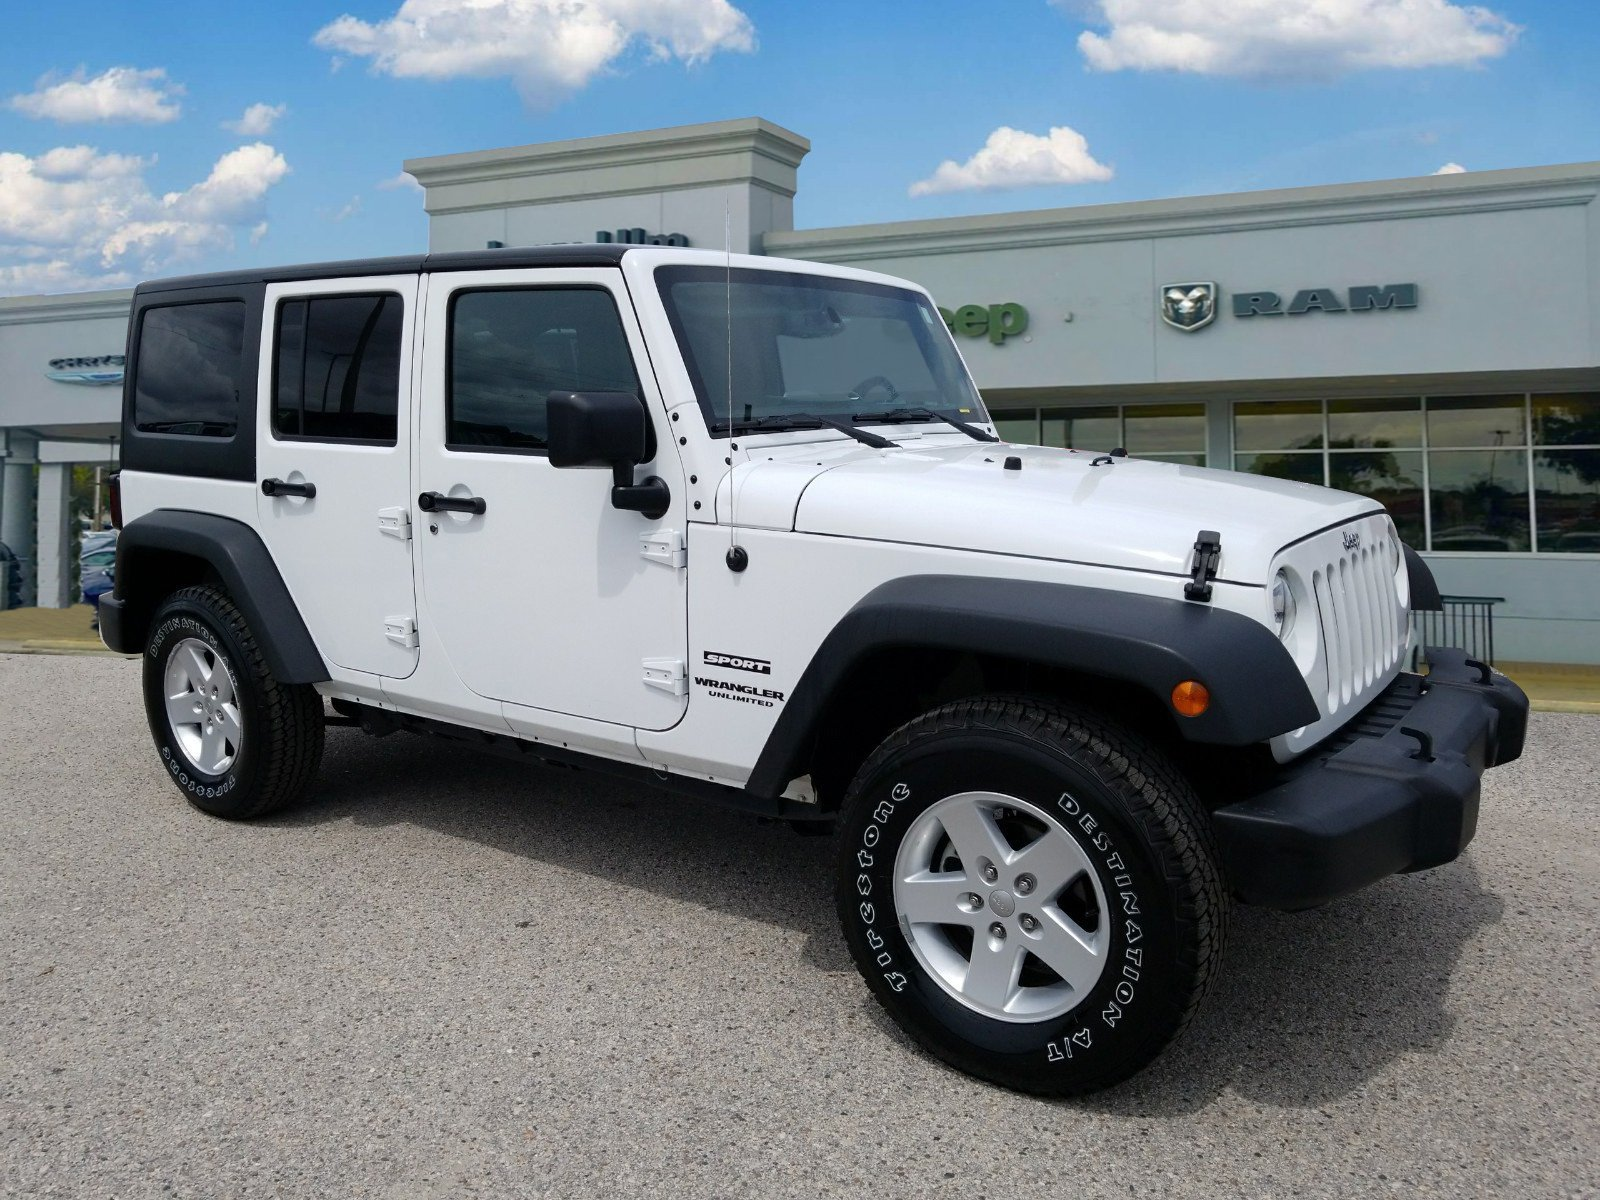 Certified Pre Owned 2017 Jeep Wrangler 4D Sport Utility in Tampa